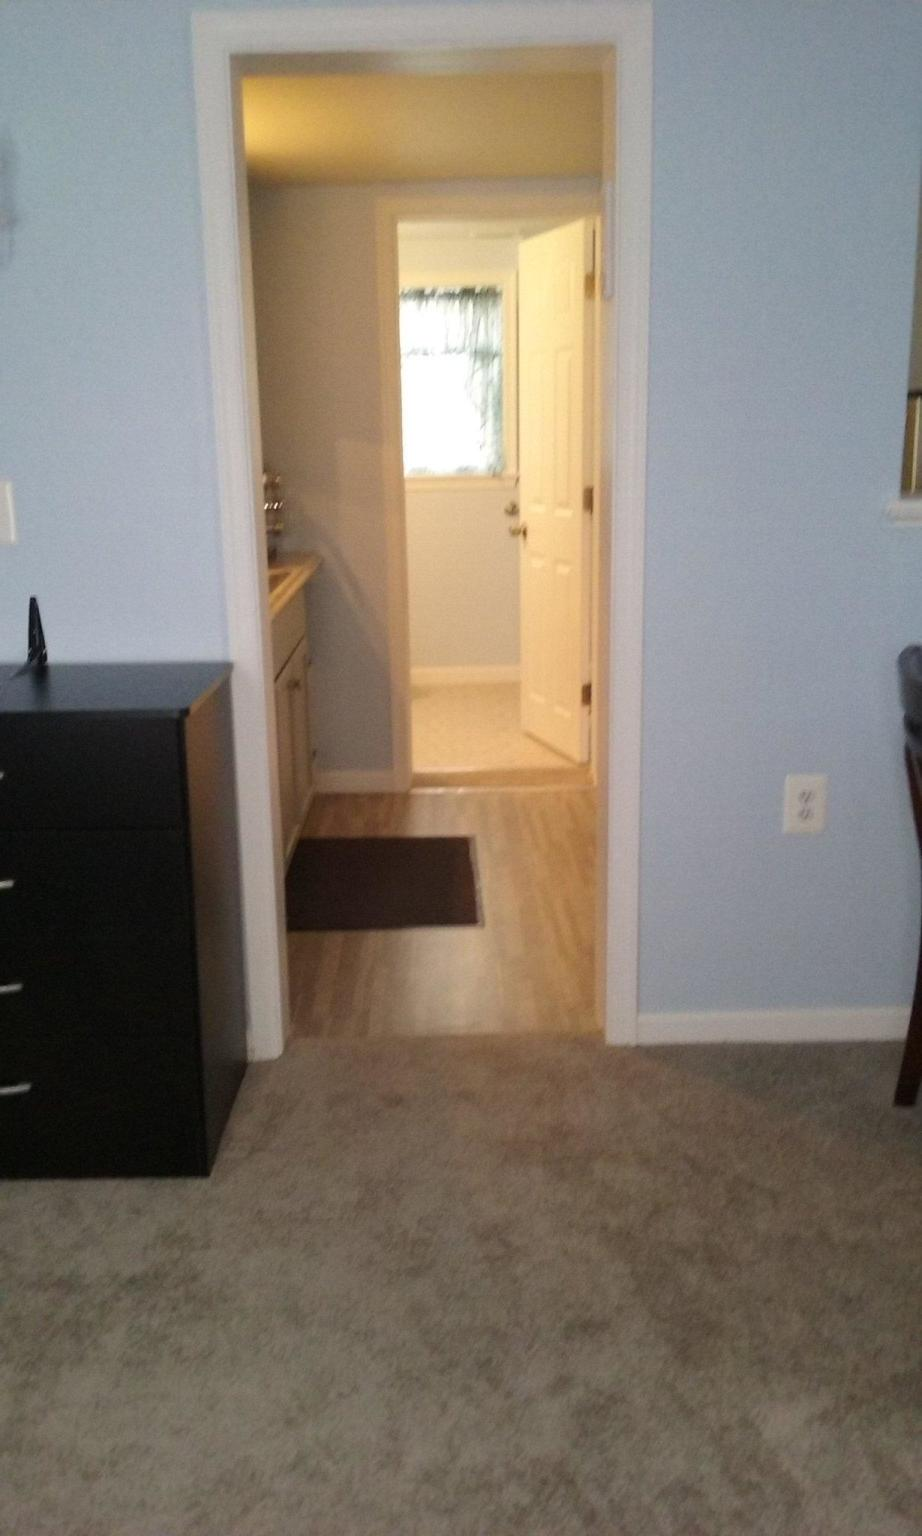 3630 Derry St #1 For Rent - Harrisburg, PA | Trulia